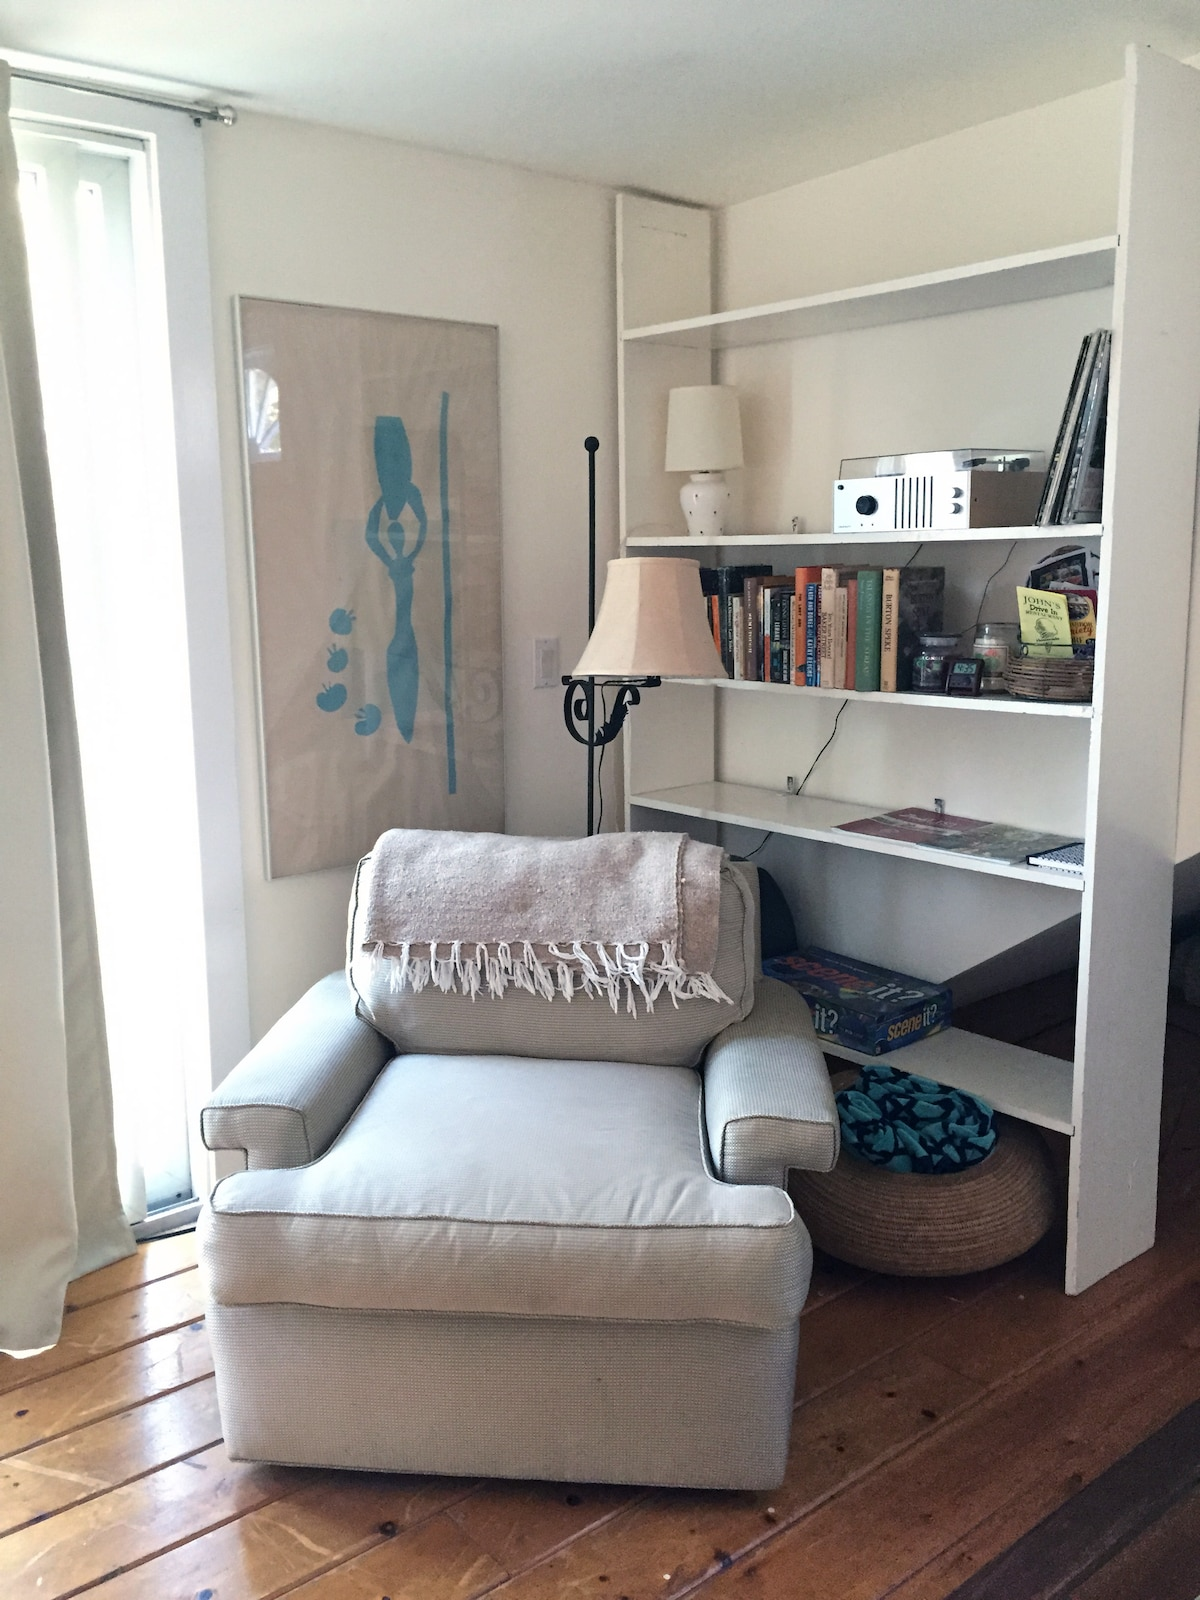 Reading nook with small library, record player, & board games. Two beach towels for your use.